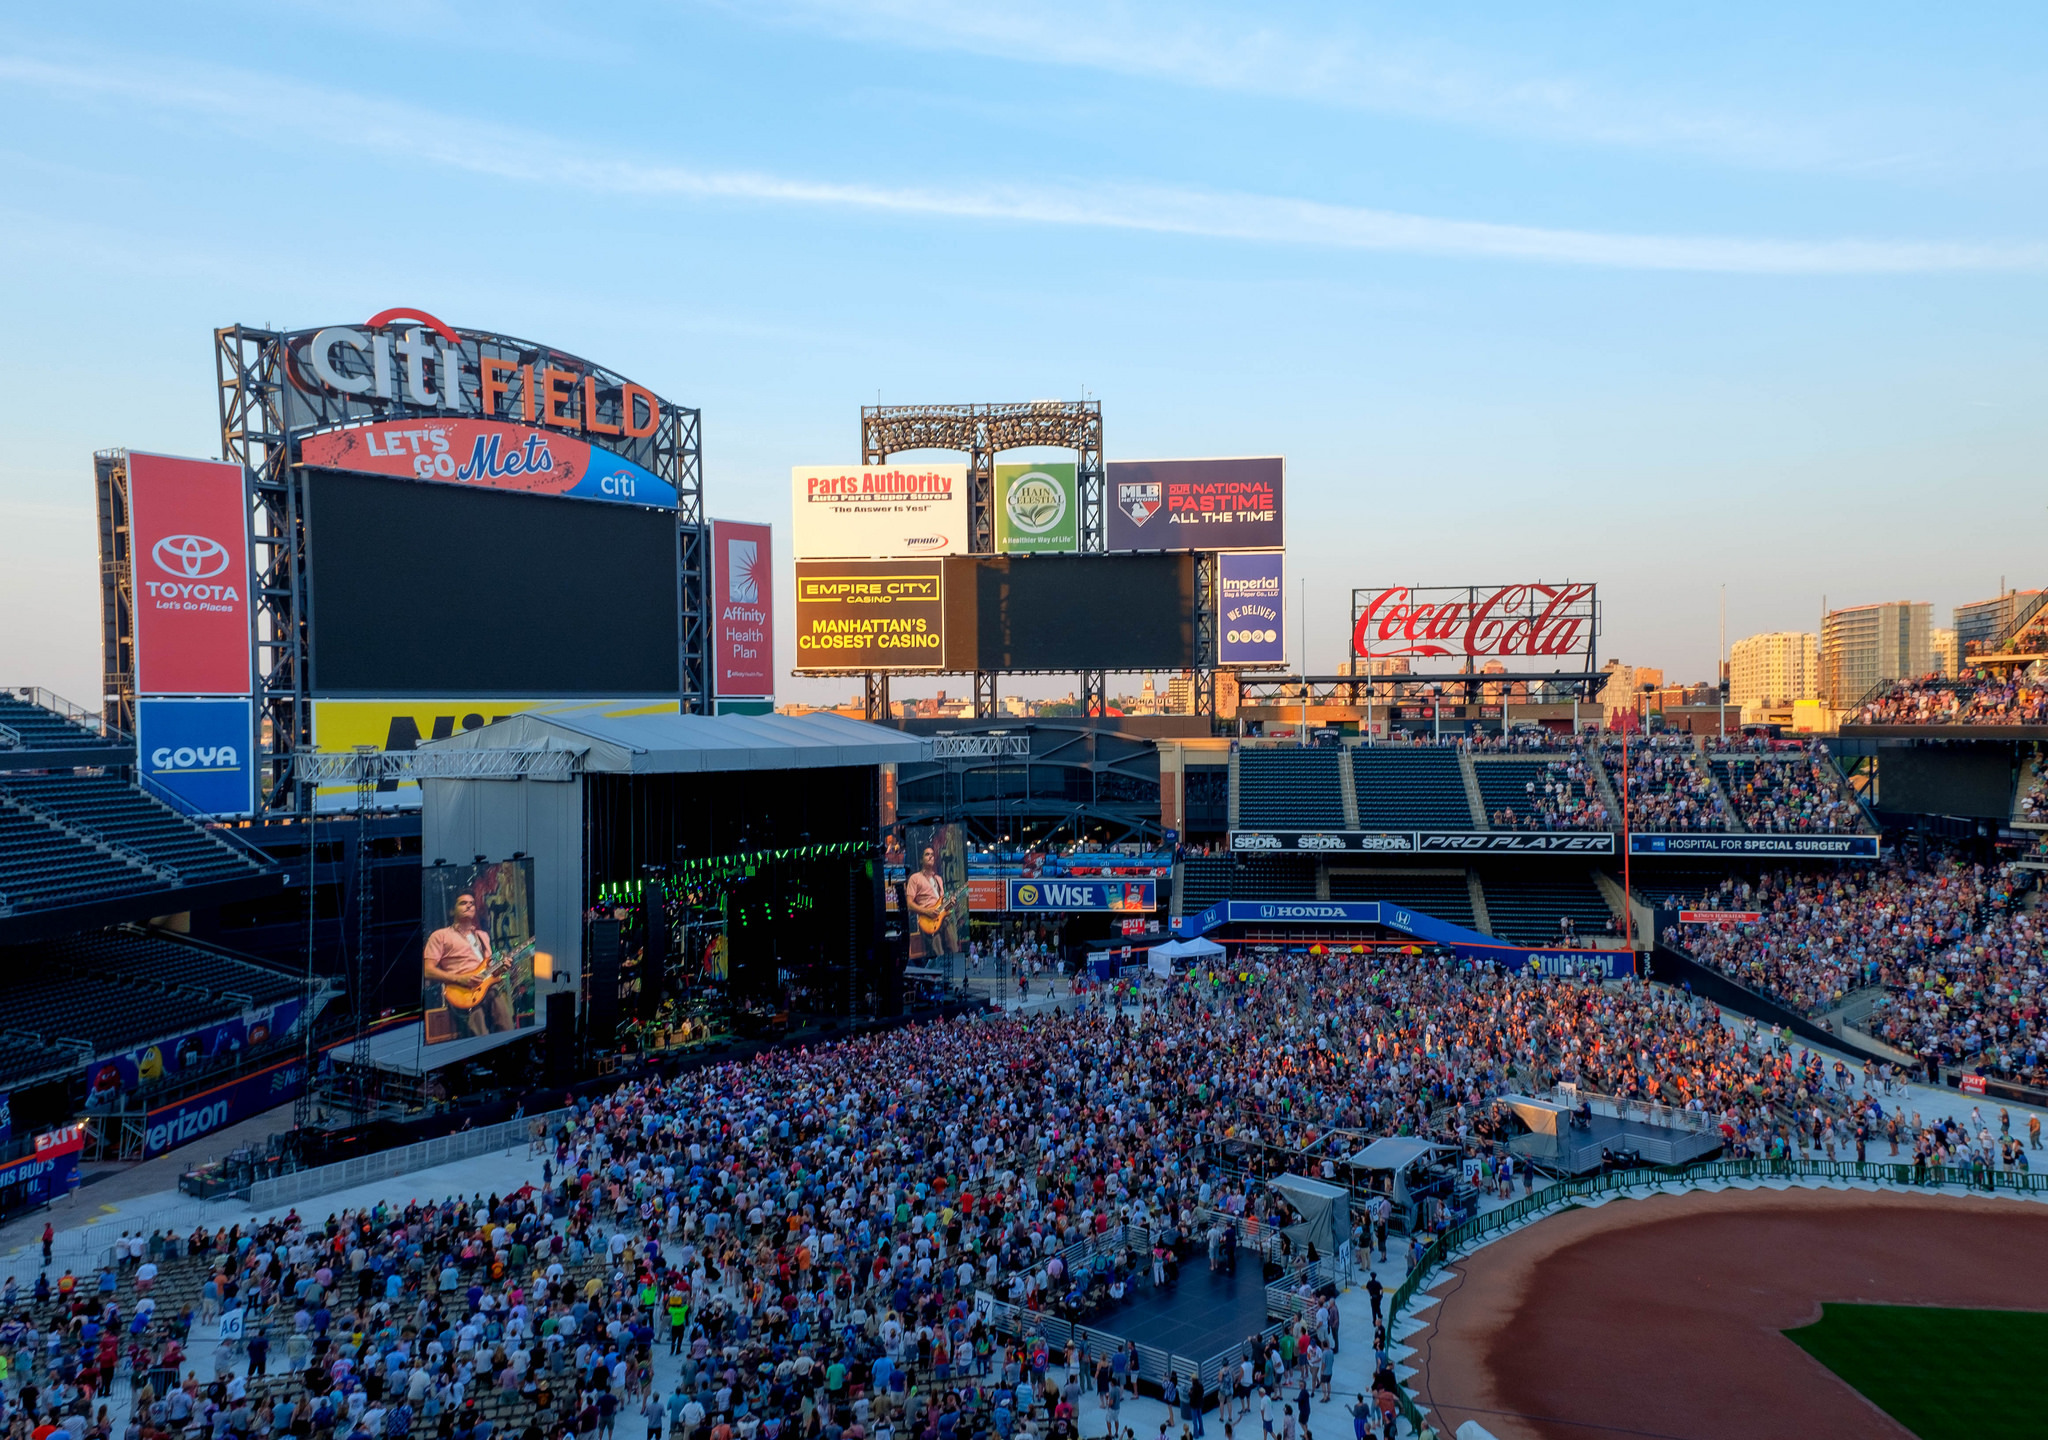 The lineup for NYC's new classic rock music festival is a masterpiece